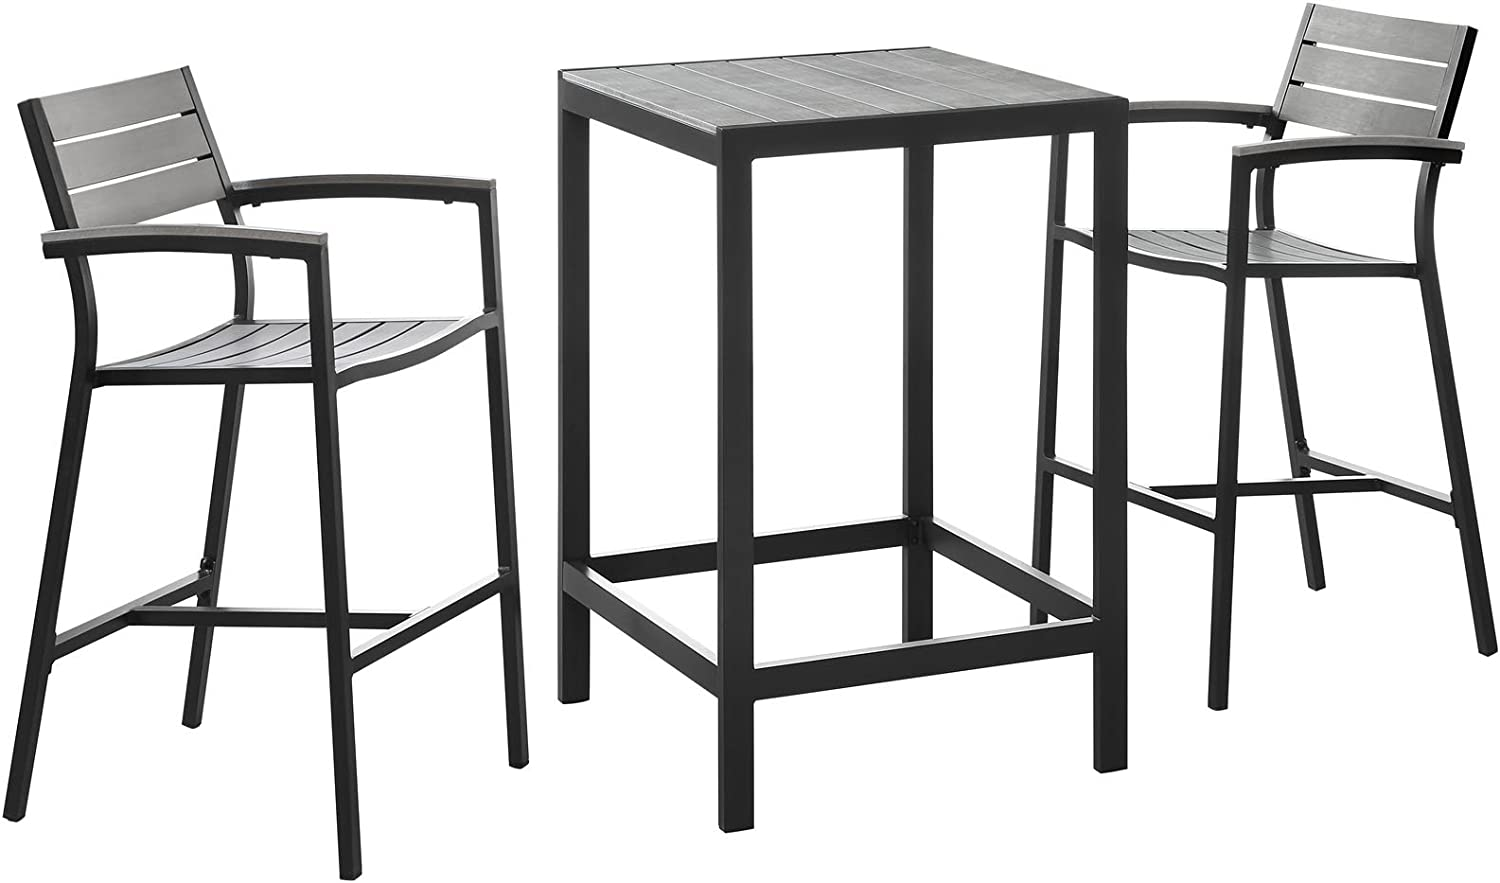 "Modway Maine Aluminum 3-Piece Outdoor Patio Dining Bistro Pub Set with 28"" Bar Table and Two Bar Stools in Brown Gray"